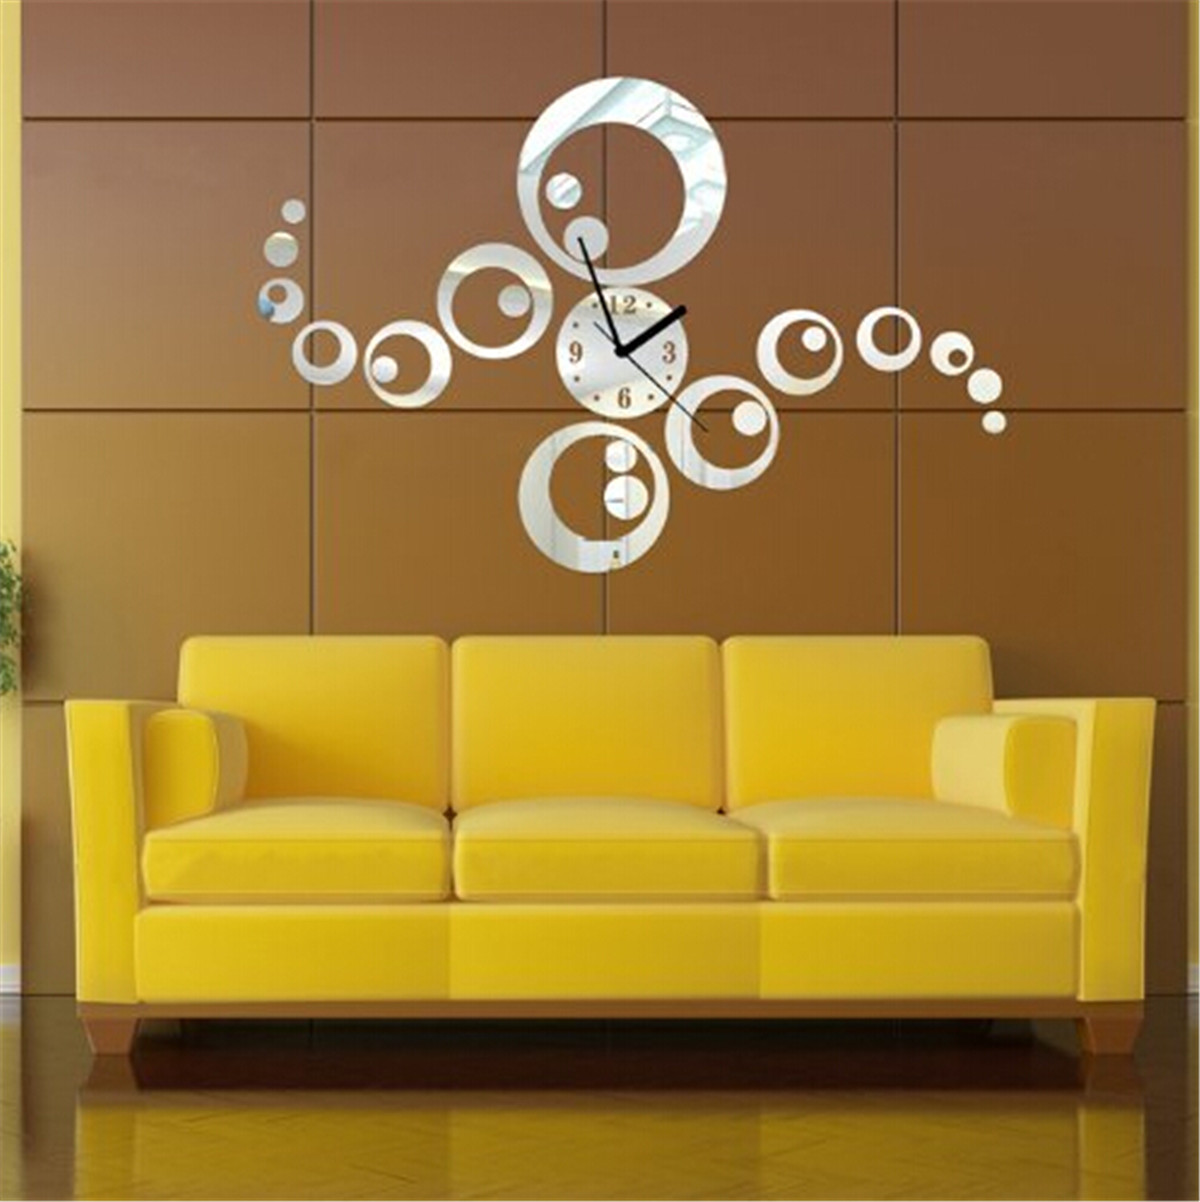 3D Mirror Surface DIY Large Home Office Room Wall Clock Sticker Art ...